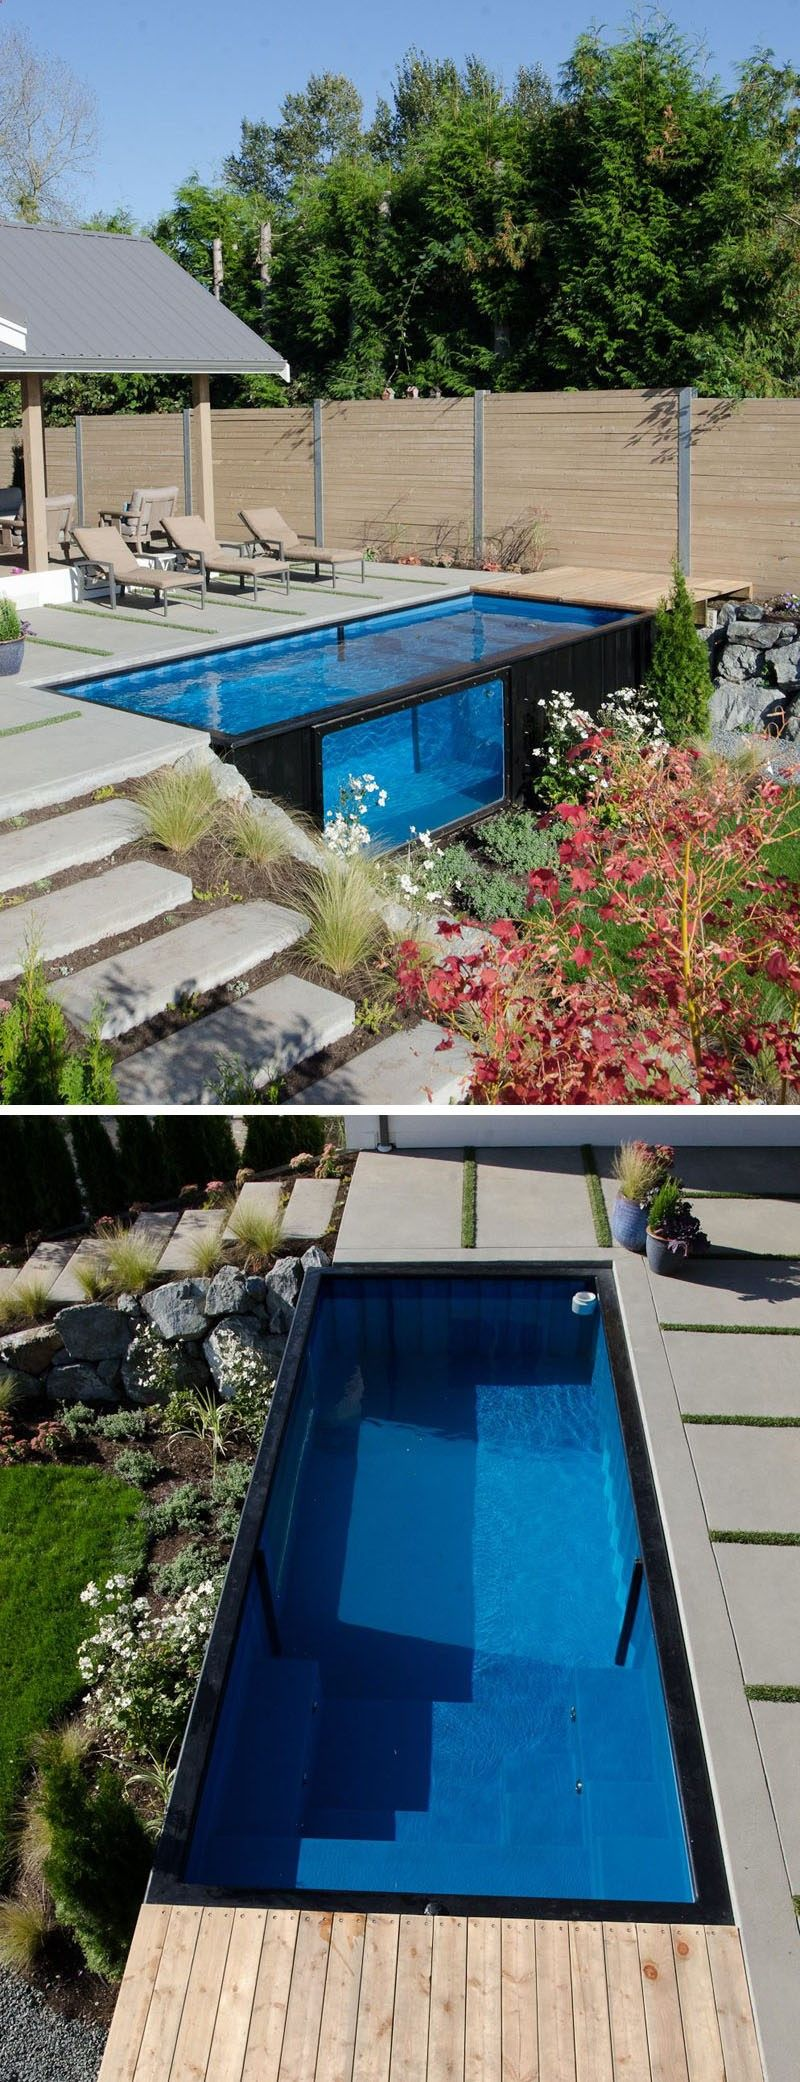 Container house modpools have transformed shipping containers into